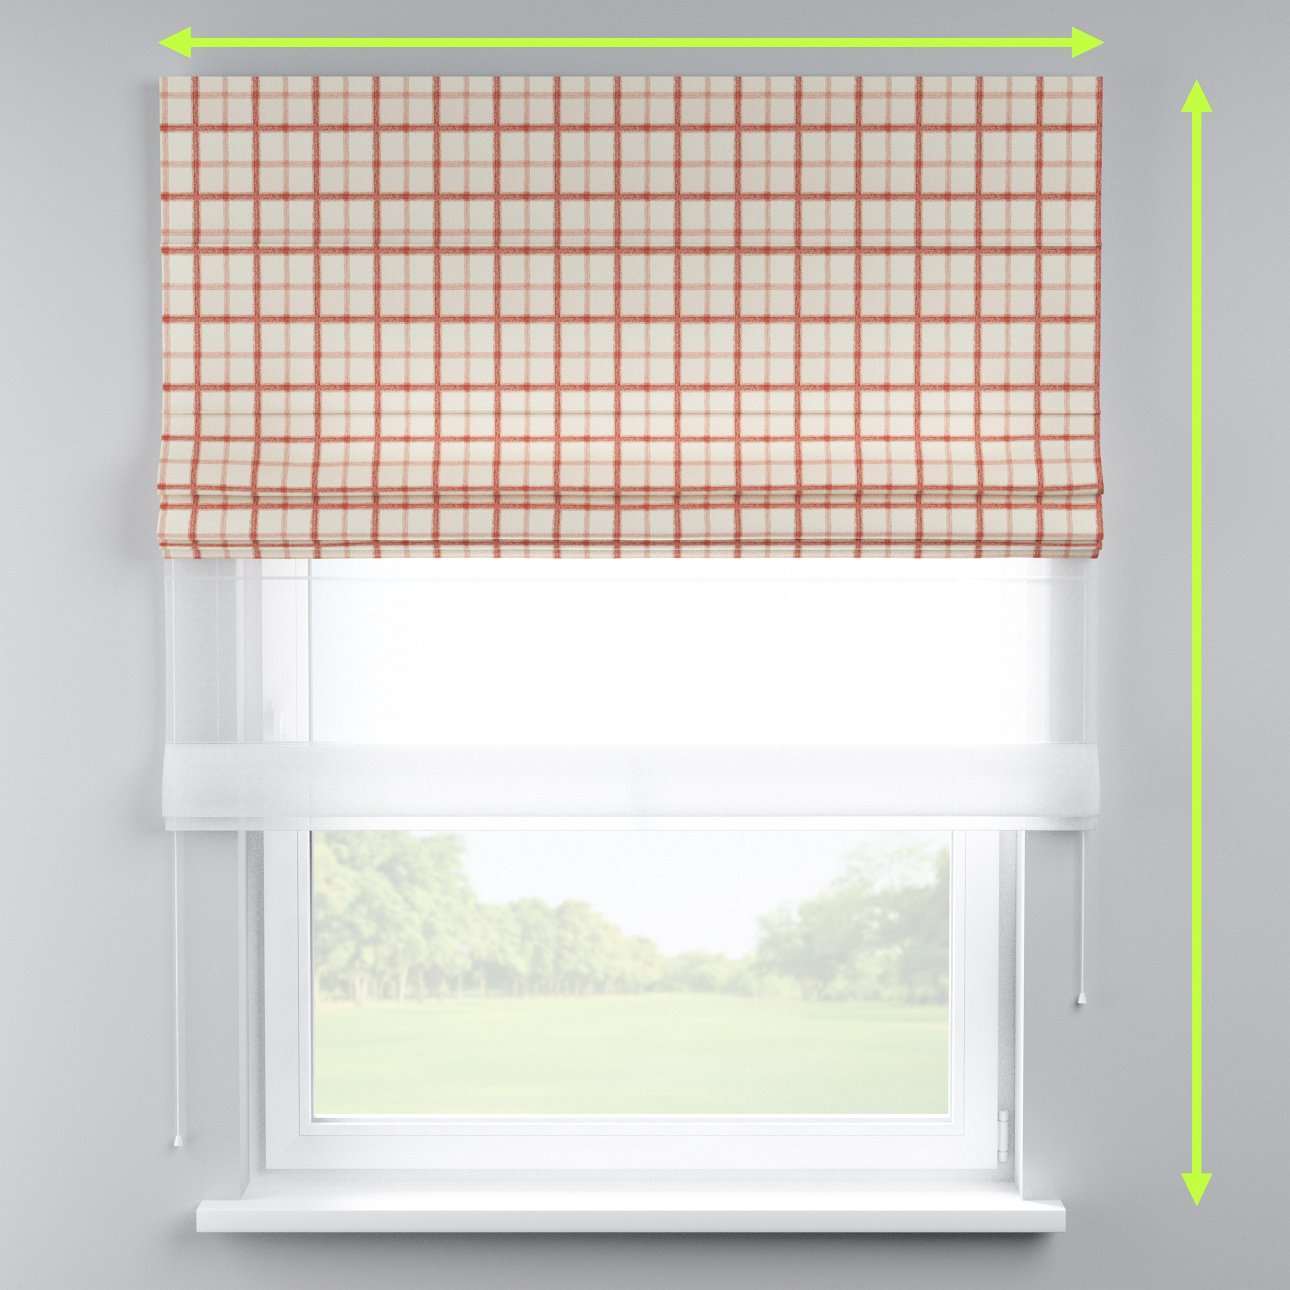 Voile and fabric roman blind (DUO II) in collection Avinon, fabric: 131-15